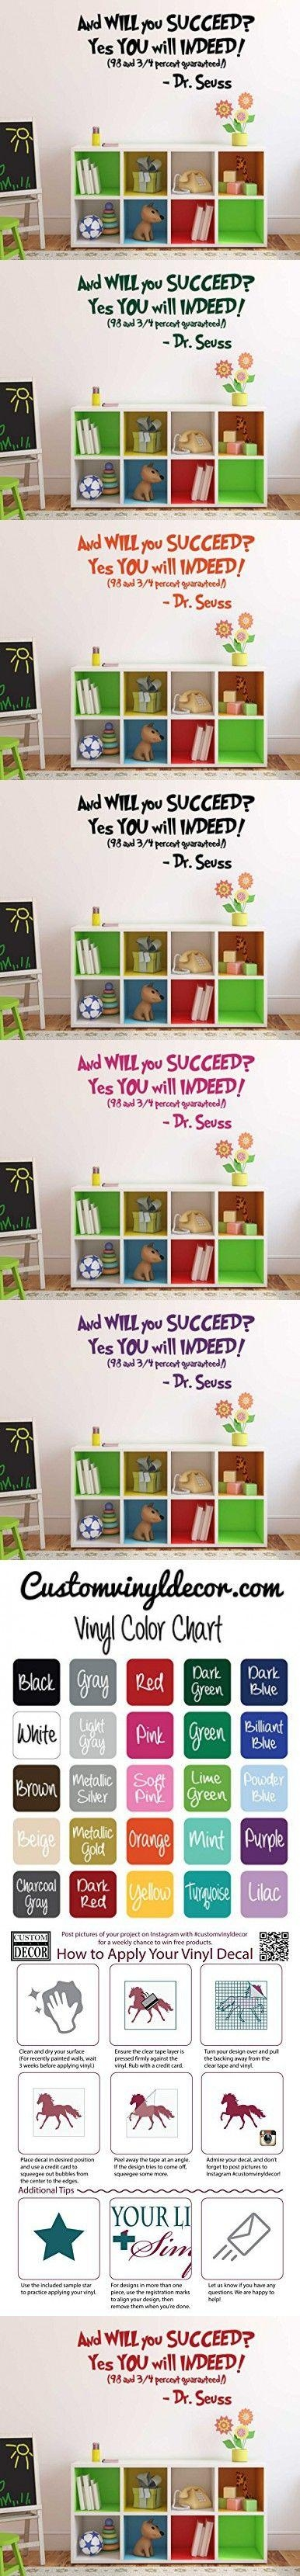 113 Best {Library} Shelves & Signage Images On Pinterest | Library Regarding Preschool Classroom Wall Decals (Image 1 of 20)